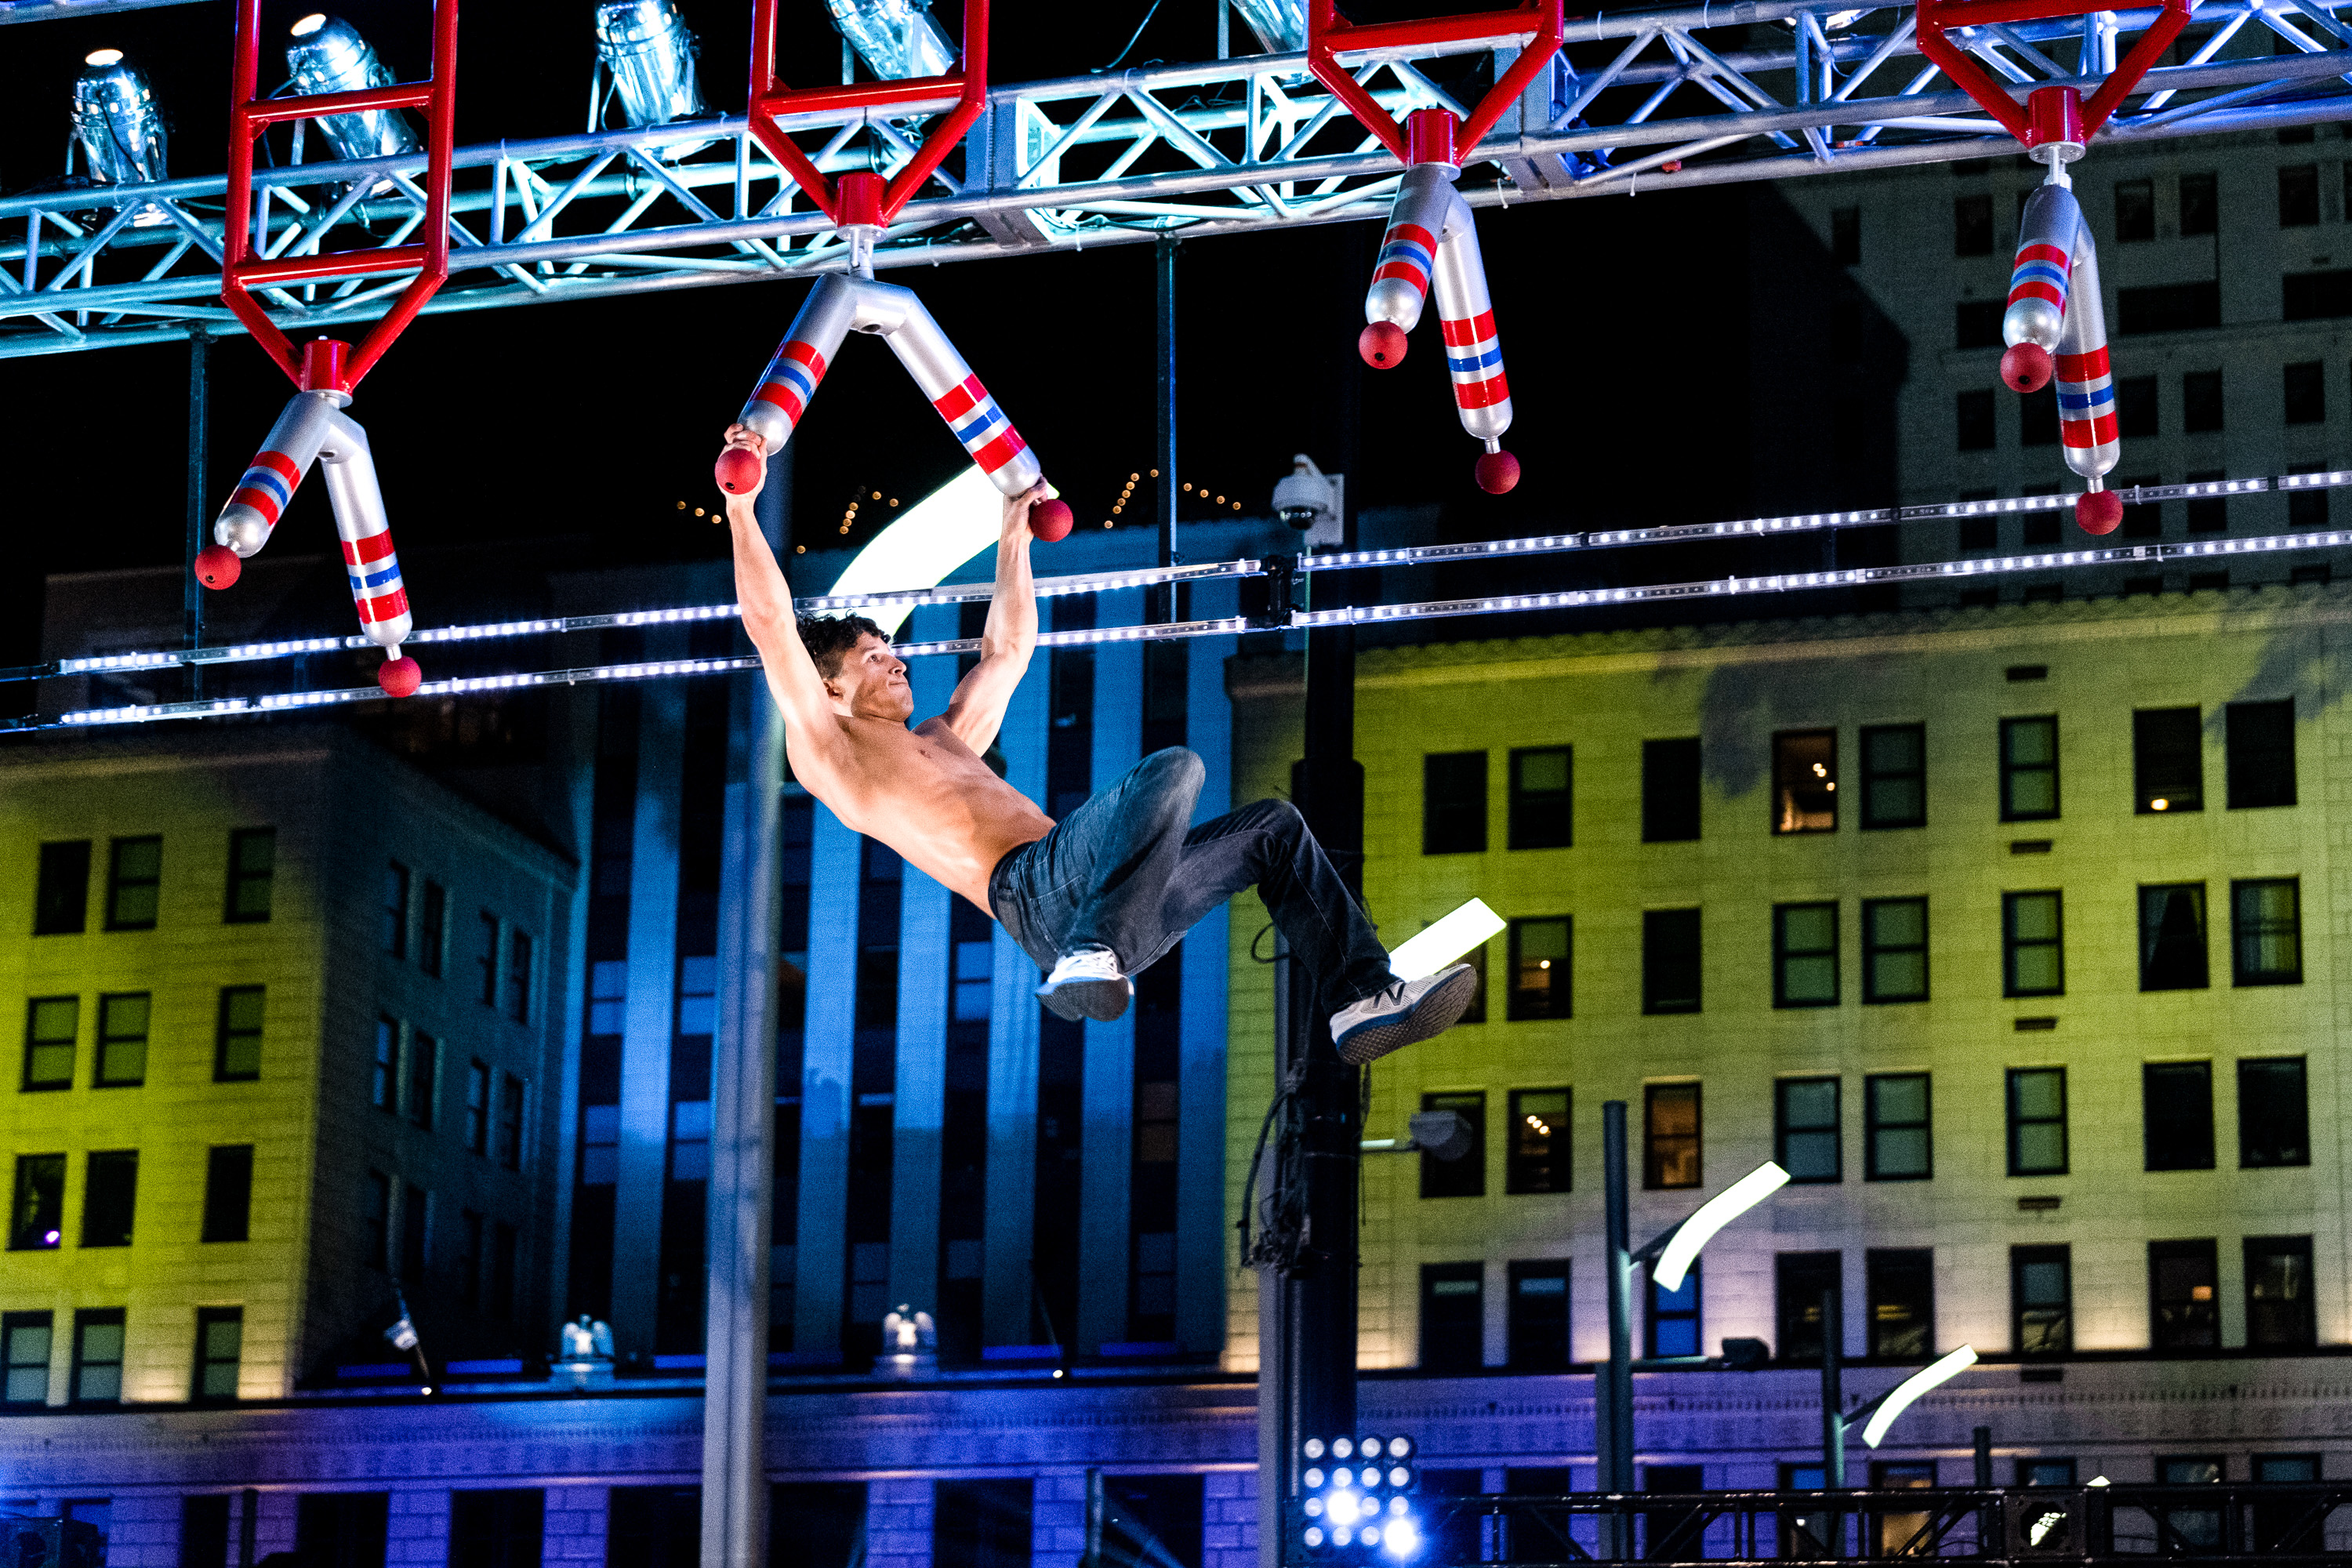 'American Ninja Warrior' national finals start this week, with 5 local athletes vying for $1 million prize